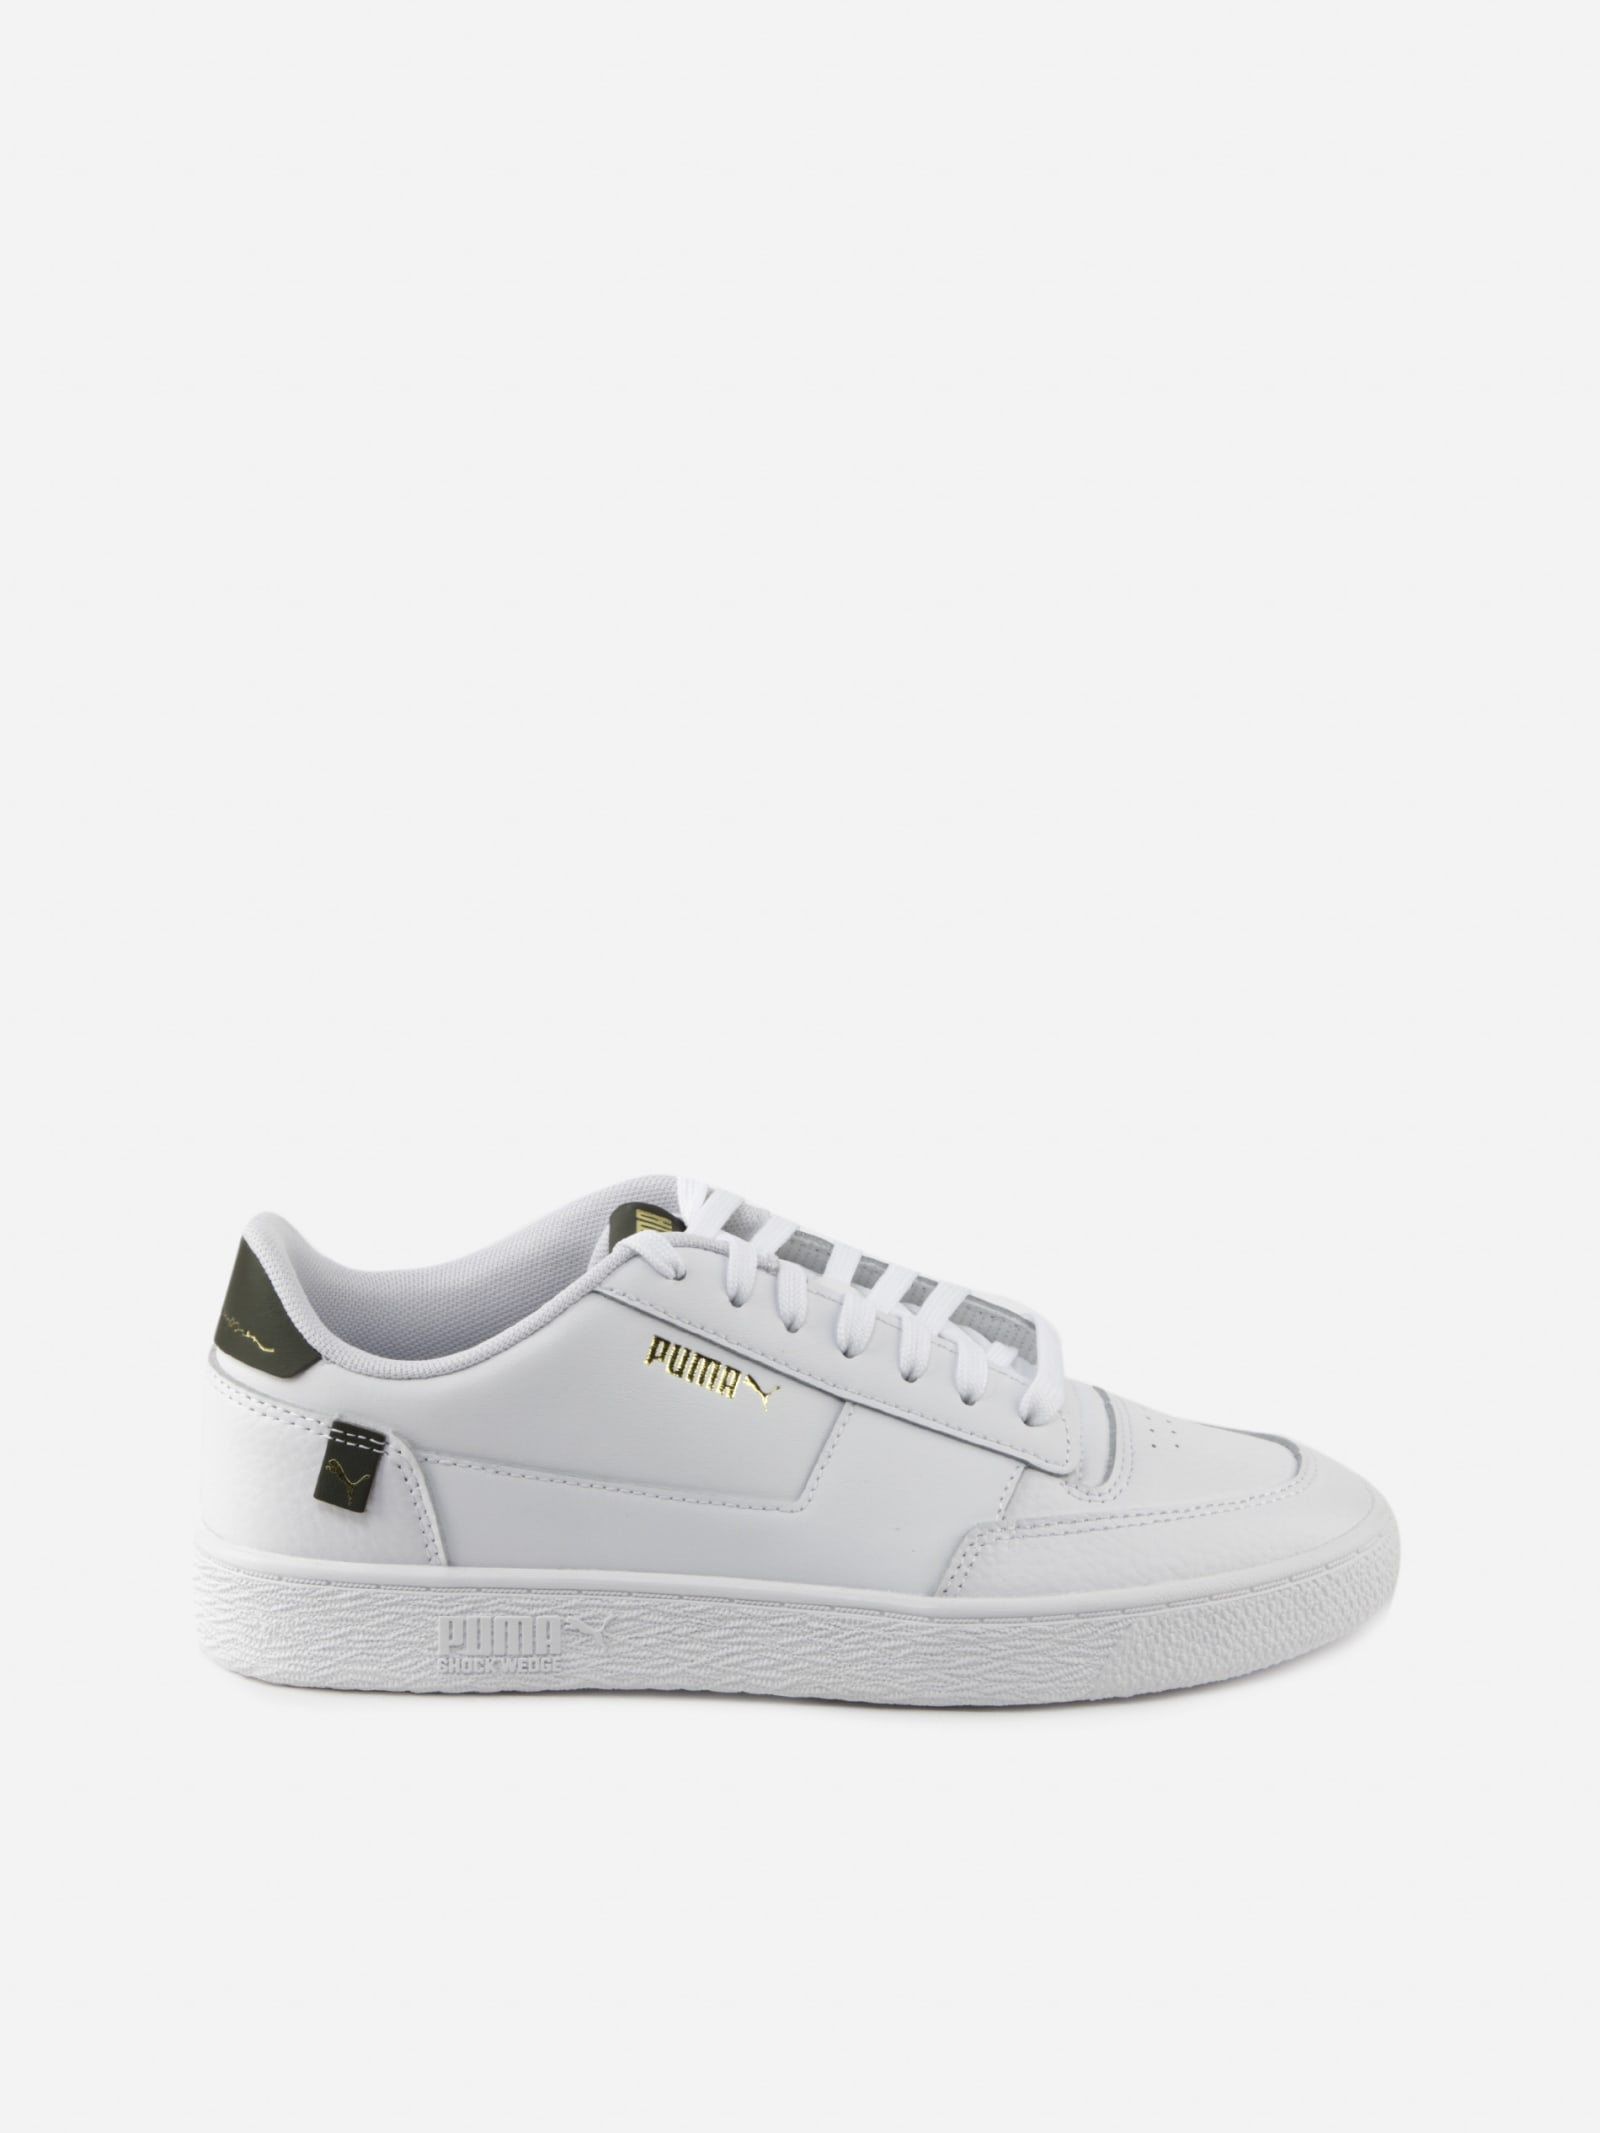 Puma RALPH SAMPSON MC CLEAN LEATHER SNEAKERS